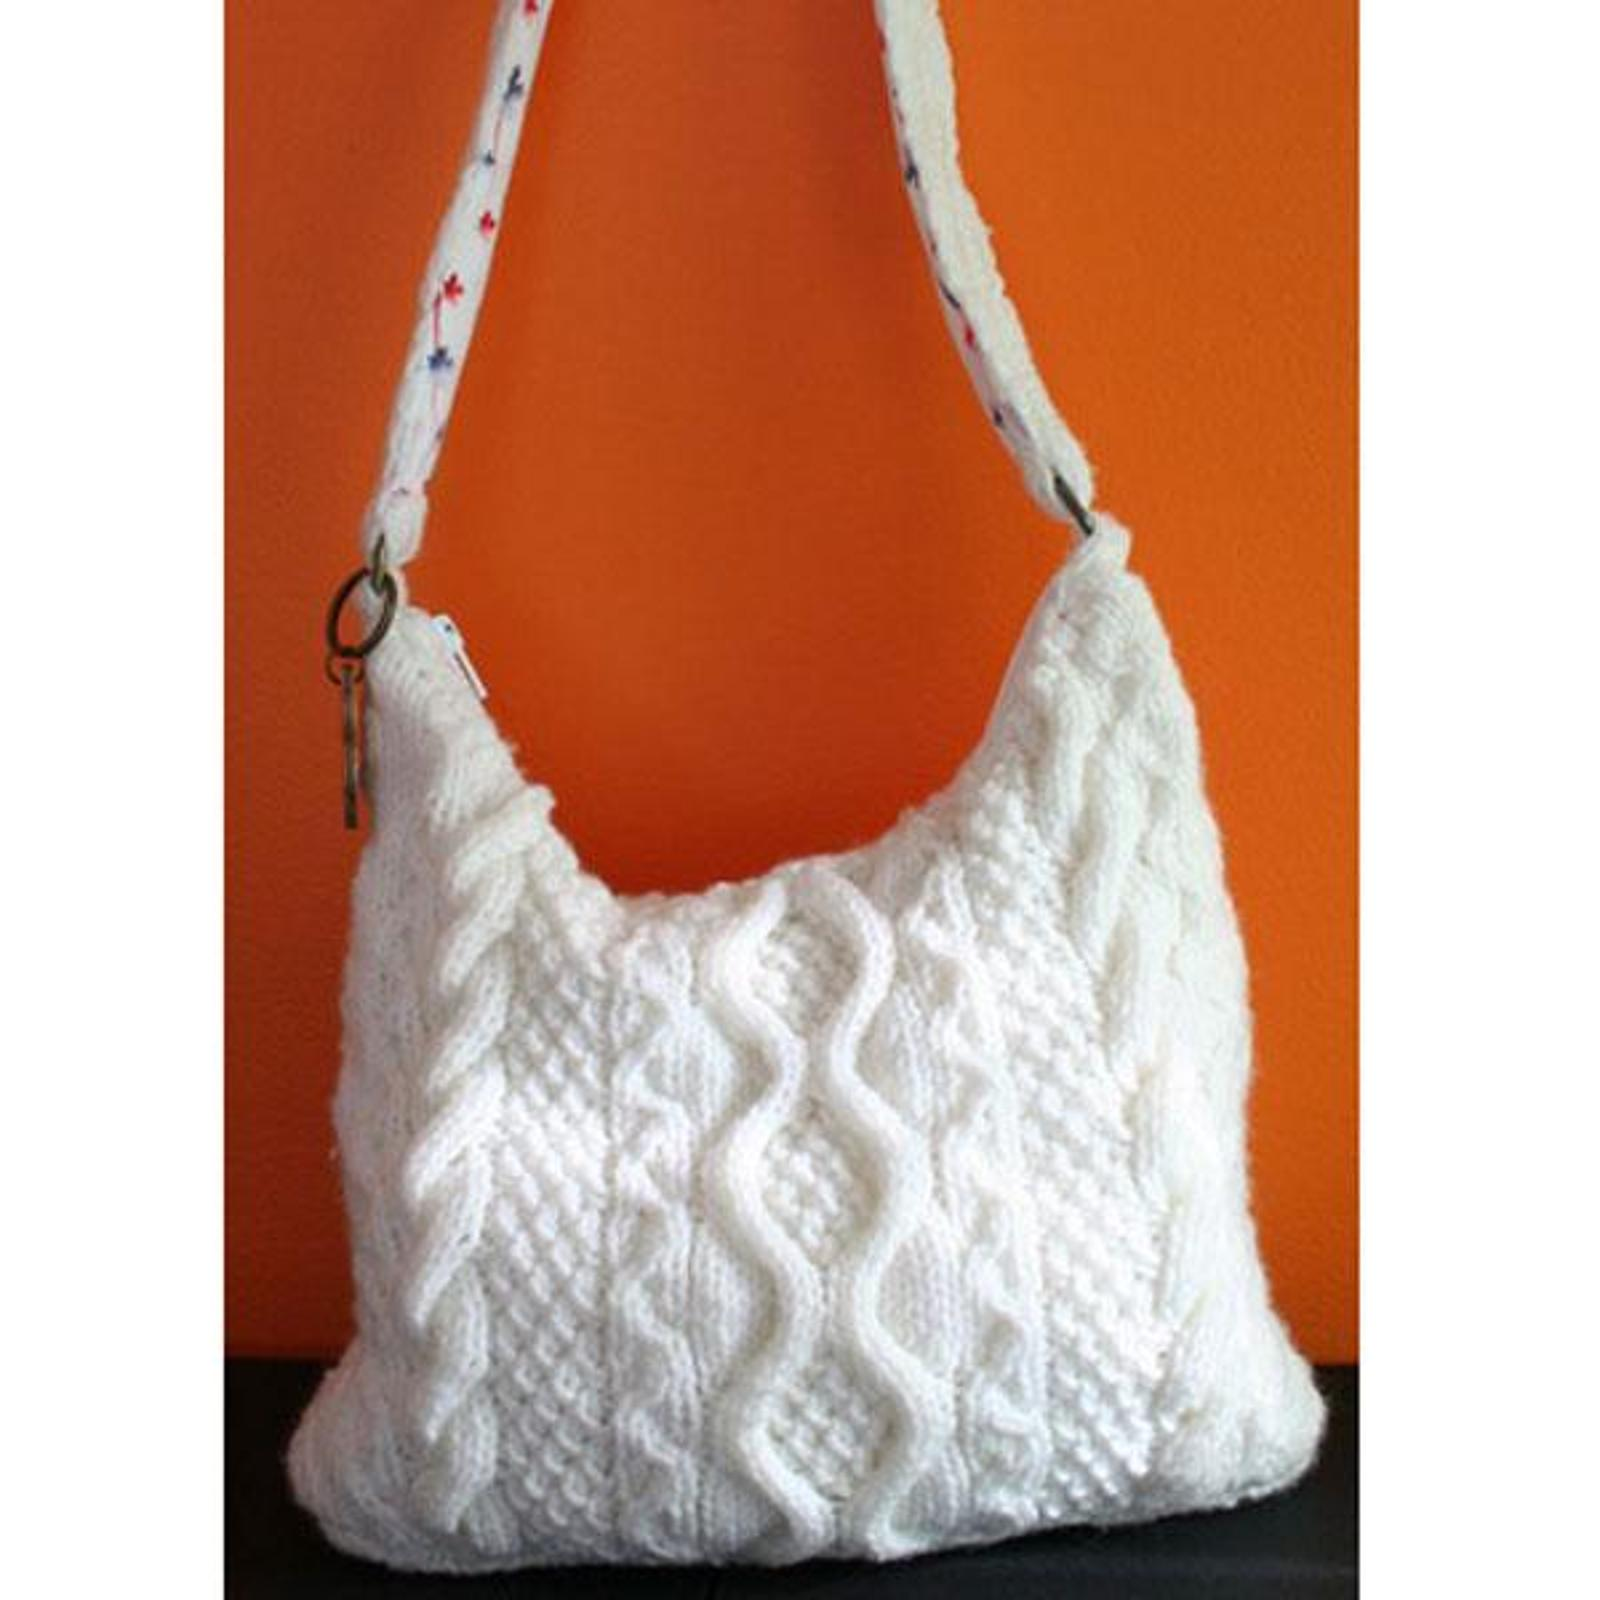 Knitted Tote Bag Pattern : 15 Stylish Bags and Totes to Knit (Free Patterns Included) Knitting Women